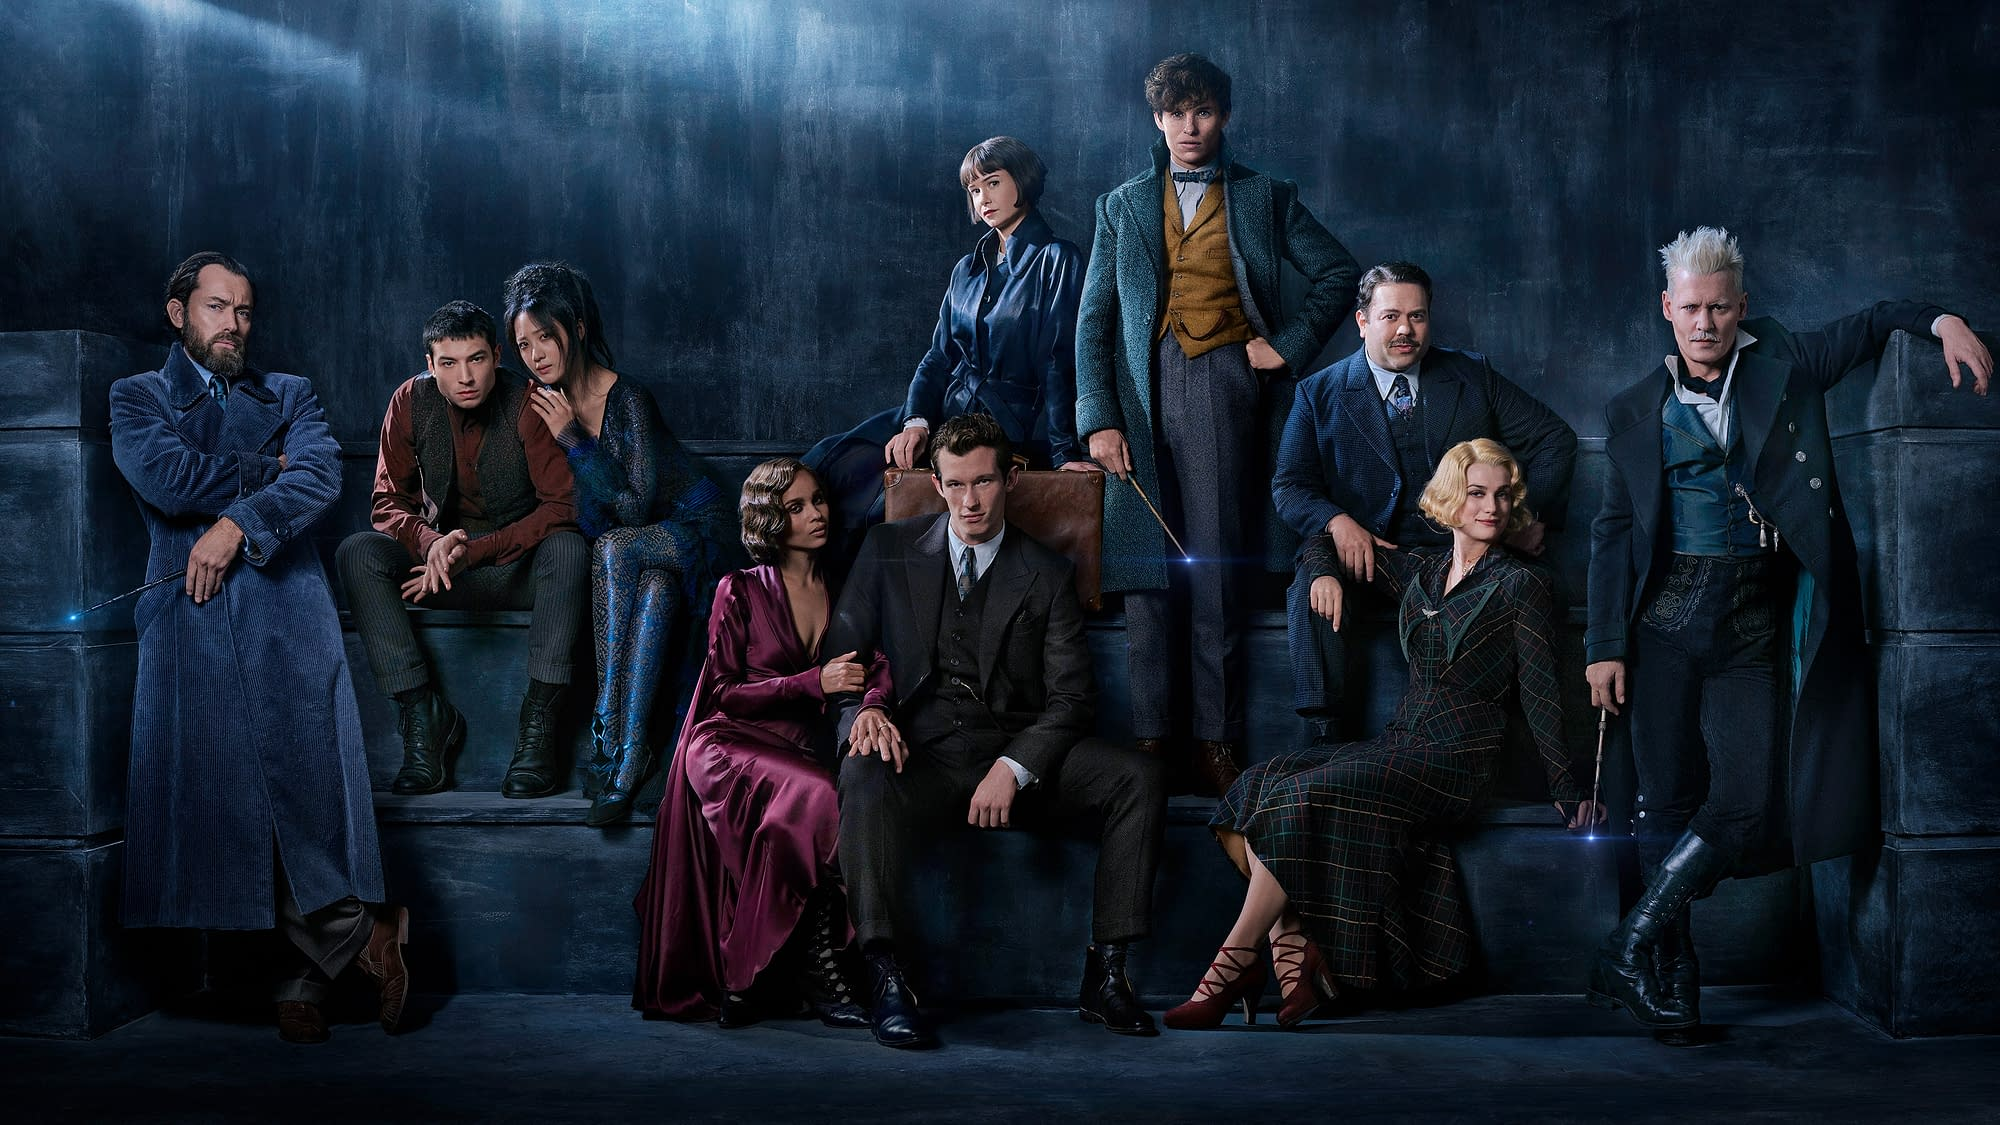 Fantastic Beasts: The Crimes of Grindelwald Producer Says This Sequel Is Better Than The First